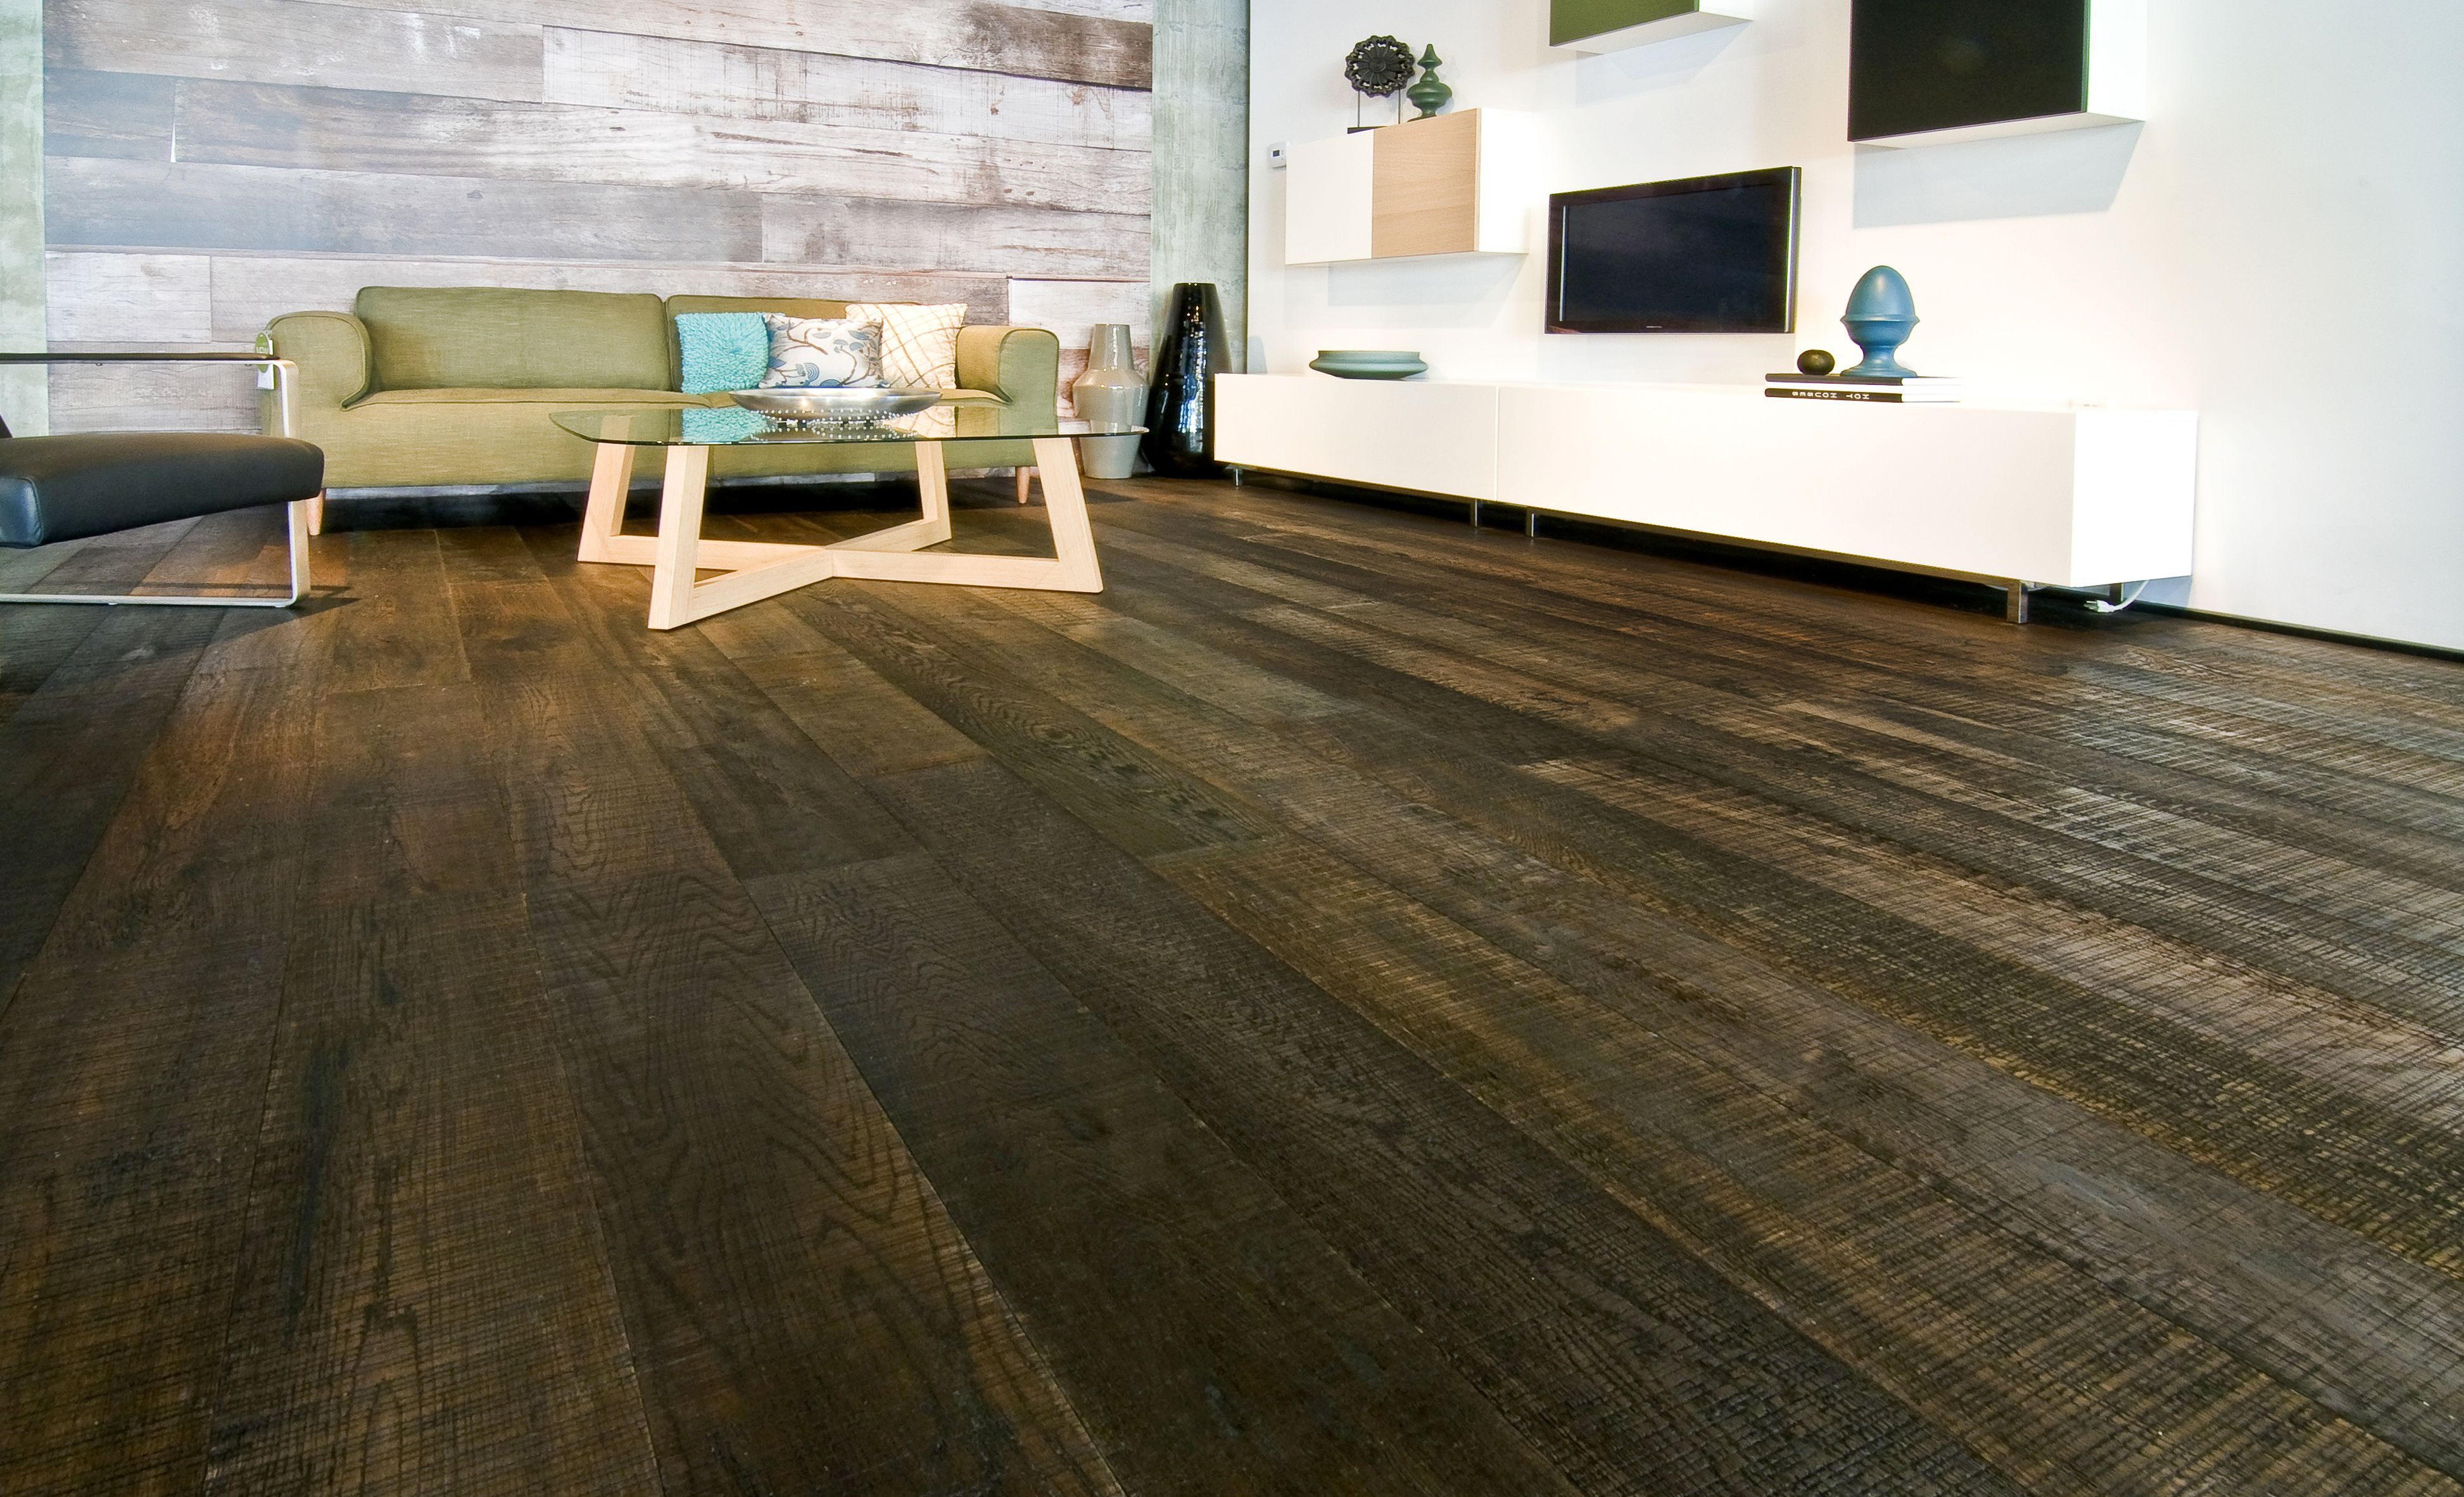 bamboo hardwood flooring for sale of duchateau fine sawn ebony hardwood flooring get the rustic look of with regard to duchateau fine sawn ebony hardwood flooring get the rustic look of genuine solid hardwood flooring in deep dark ebony to create the perfect contemporary